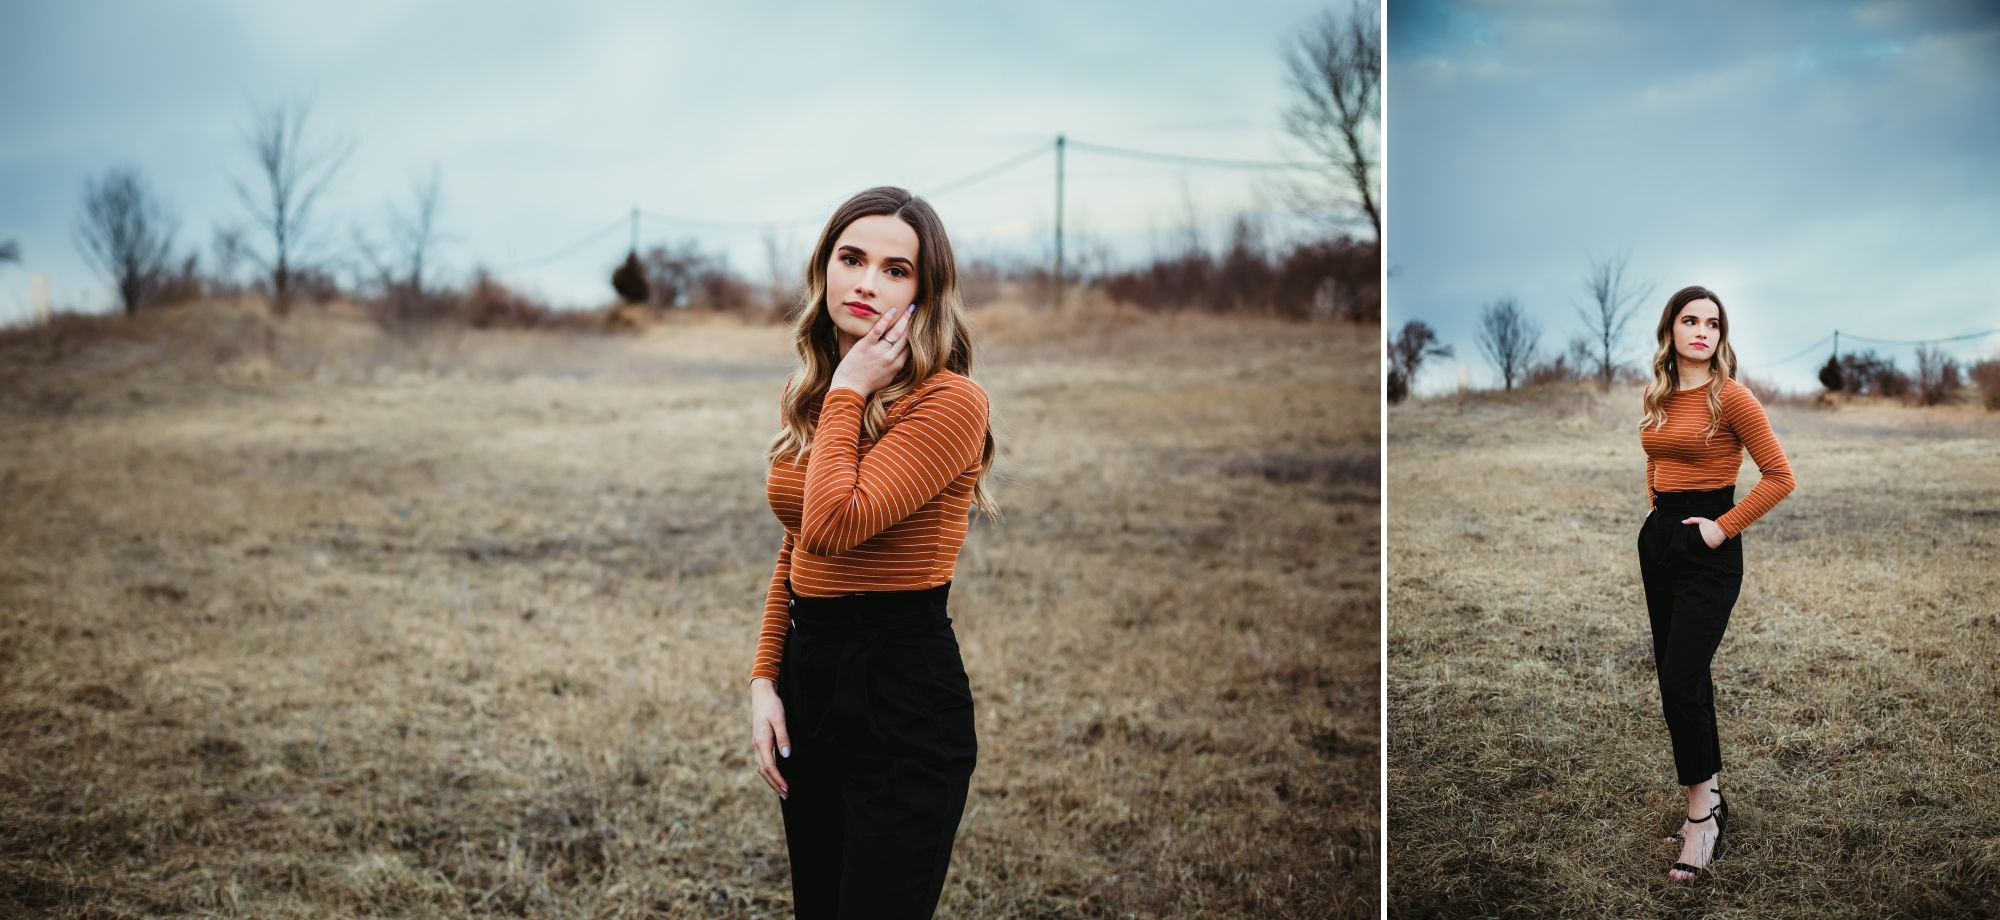 Photos of high school senior girl standing in orange shirt and black pants in an open field with blue sky behind.